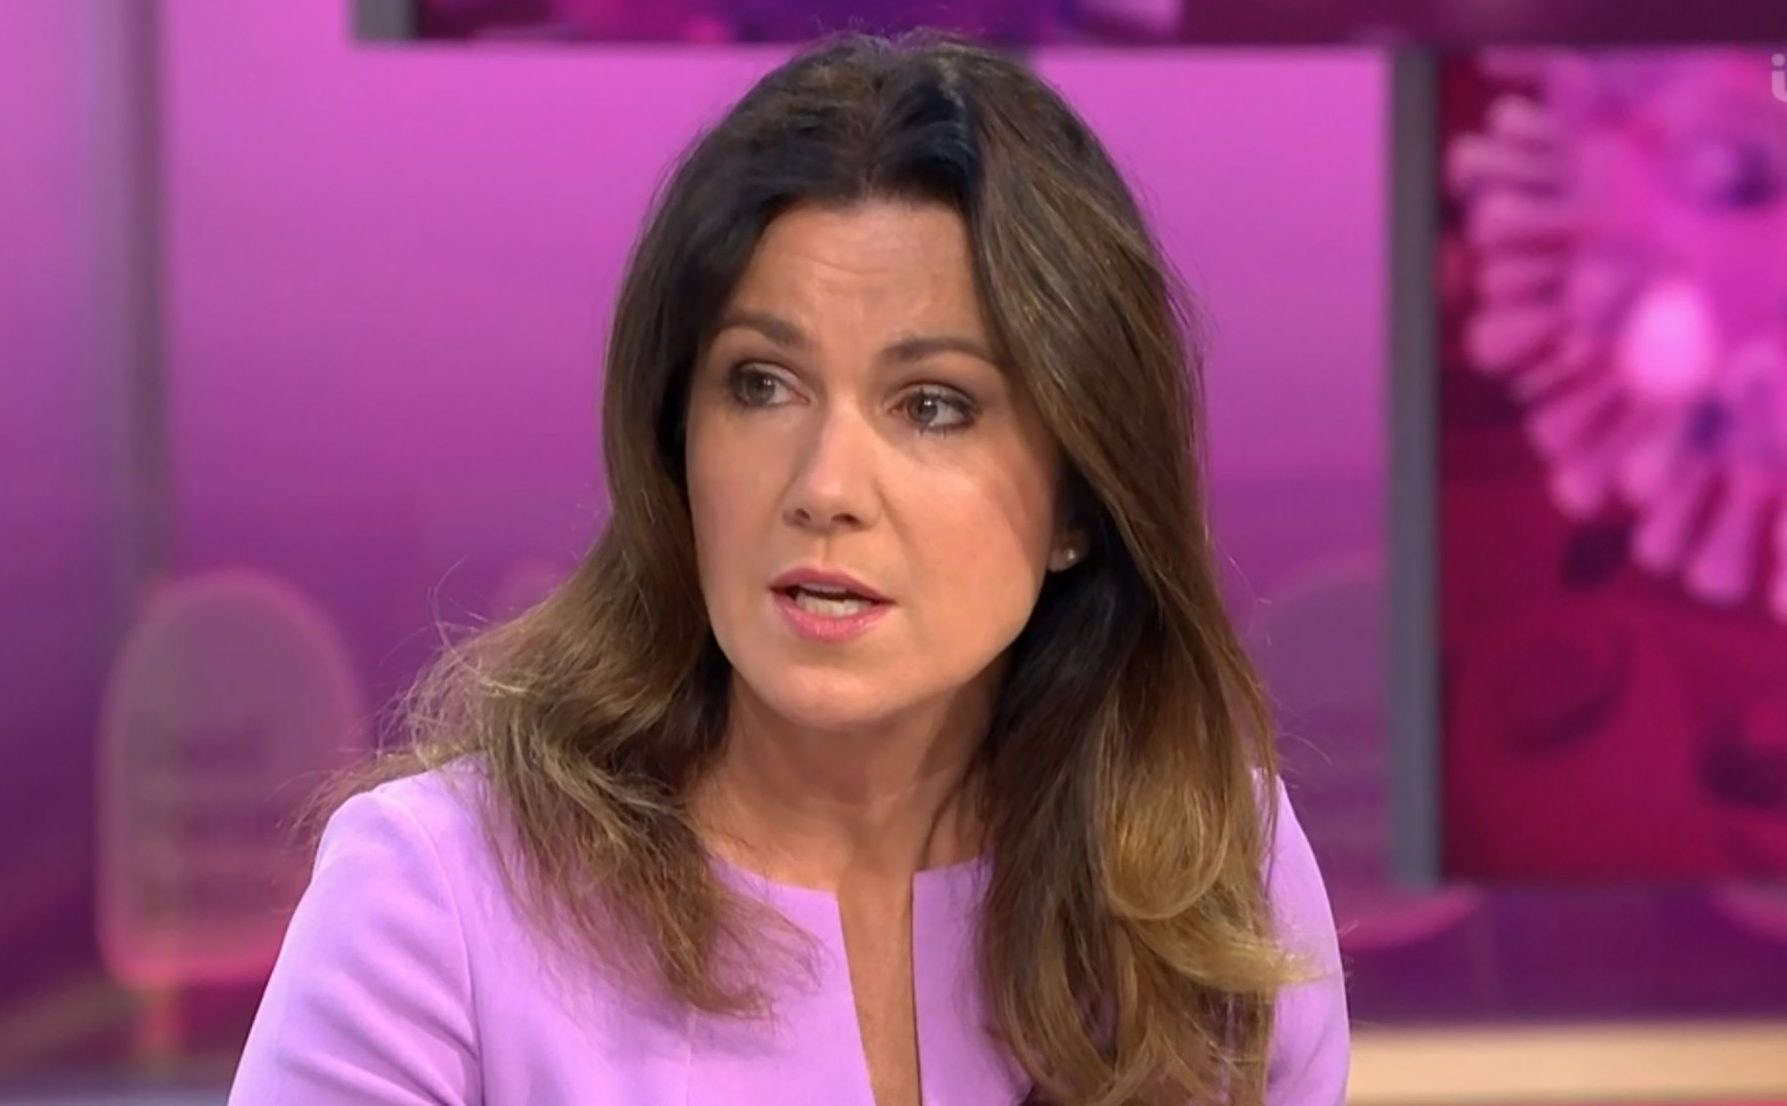 Susanna Reid defends 'rogue cough' as she thanks coronavirus key workers on Good Morning Britain